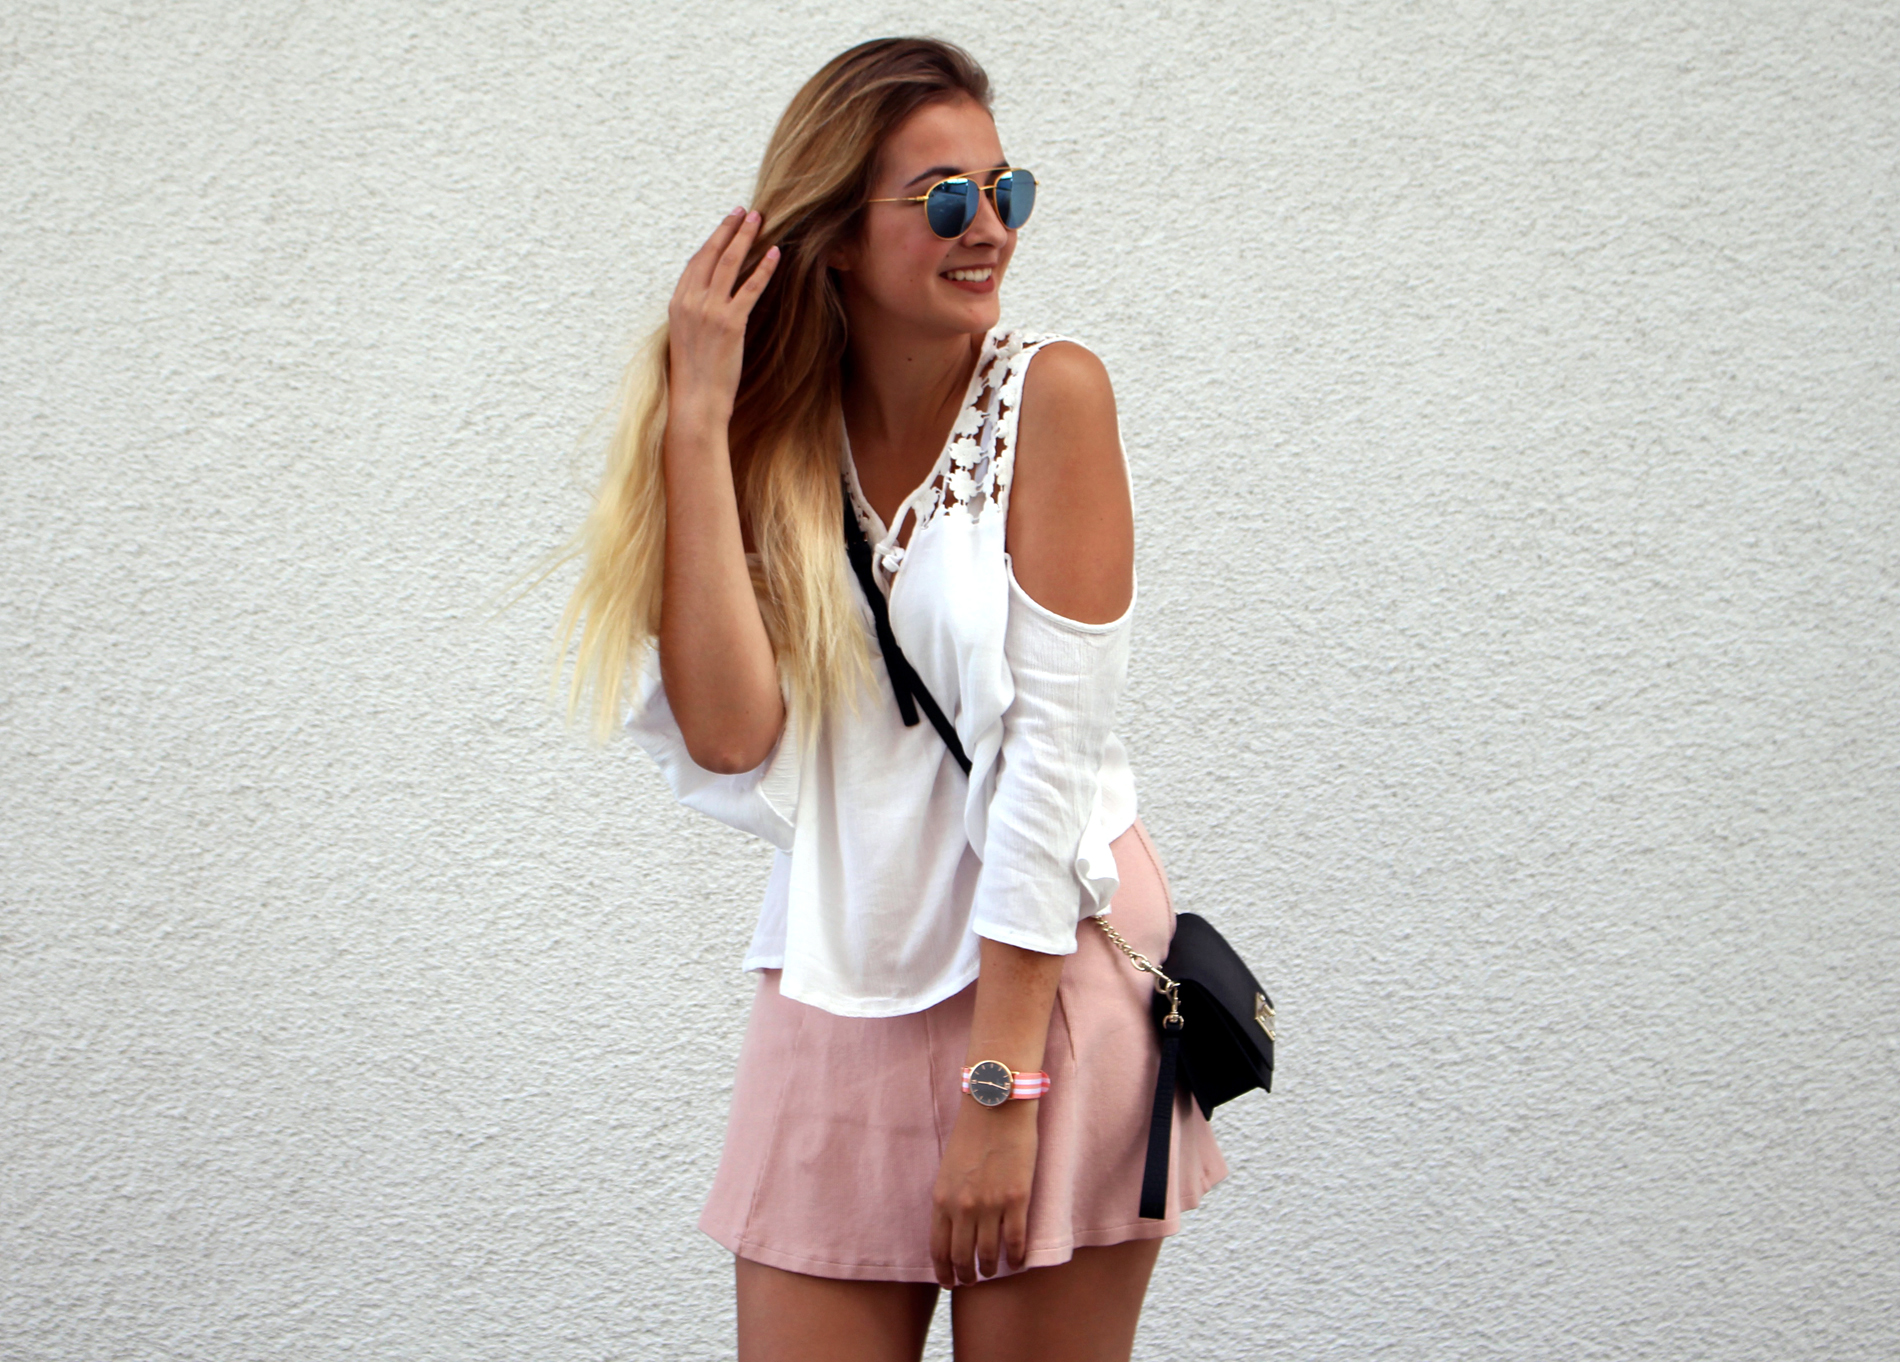 Skaterrock-off-shoulder-bluse-guessbag-sneaker-herbst-sommer-look-all-day-fleurrly-tanja.jpg